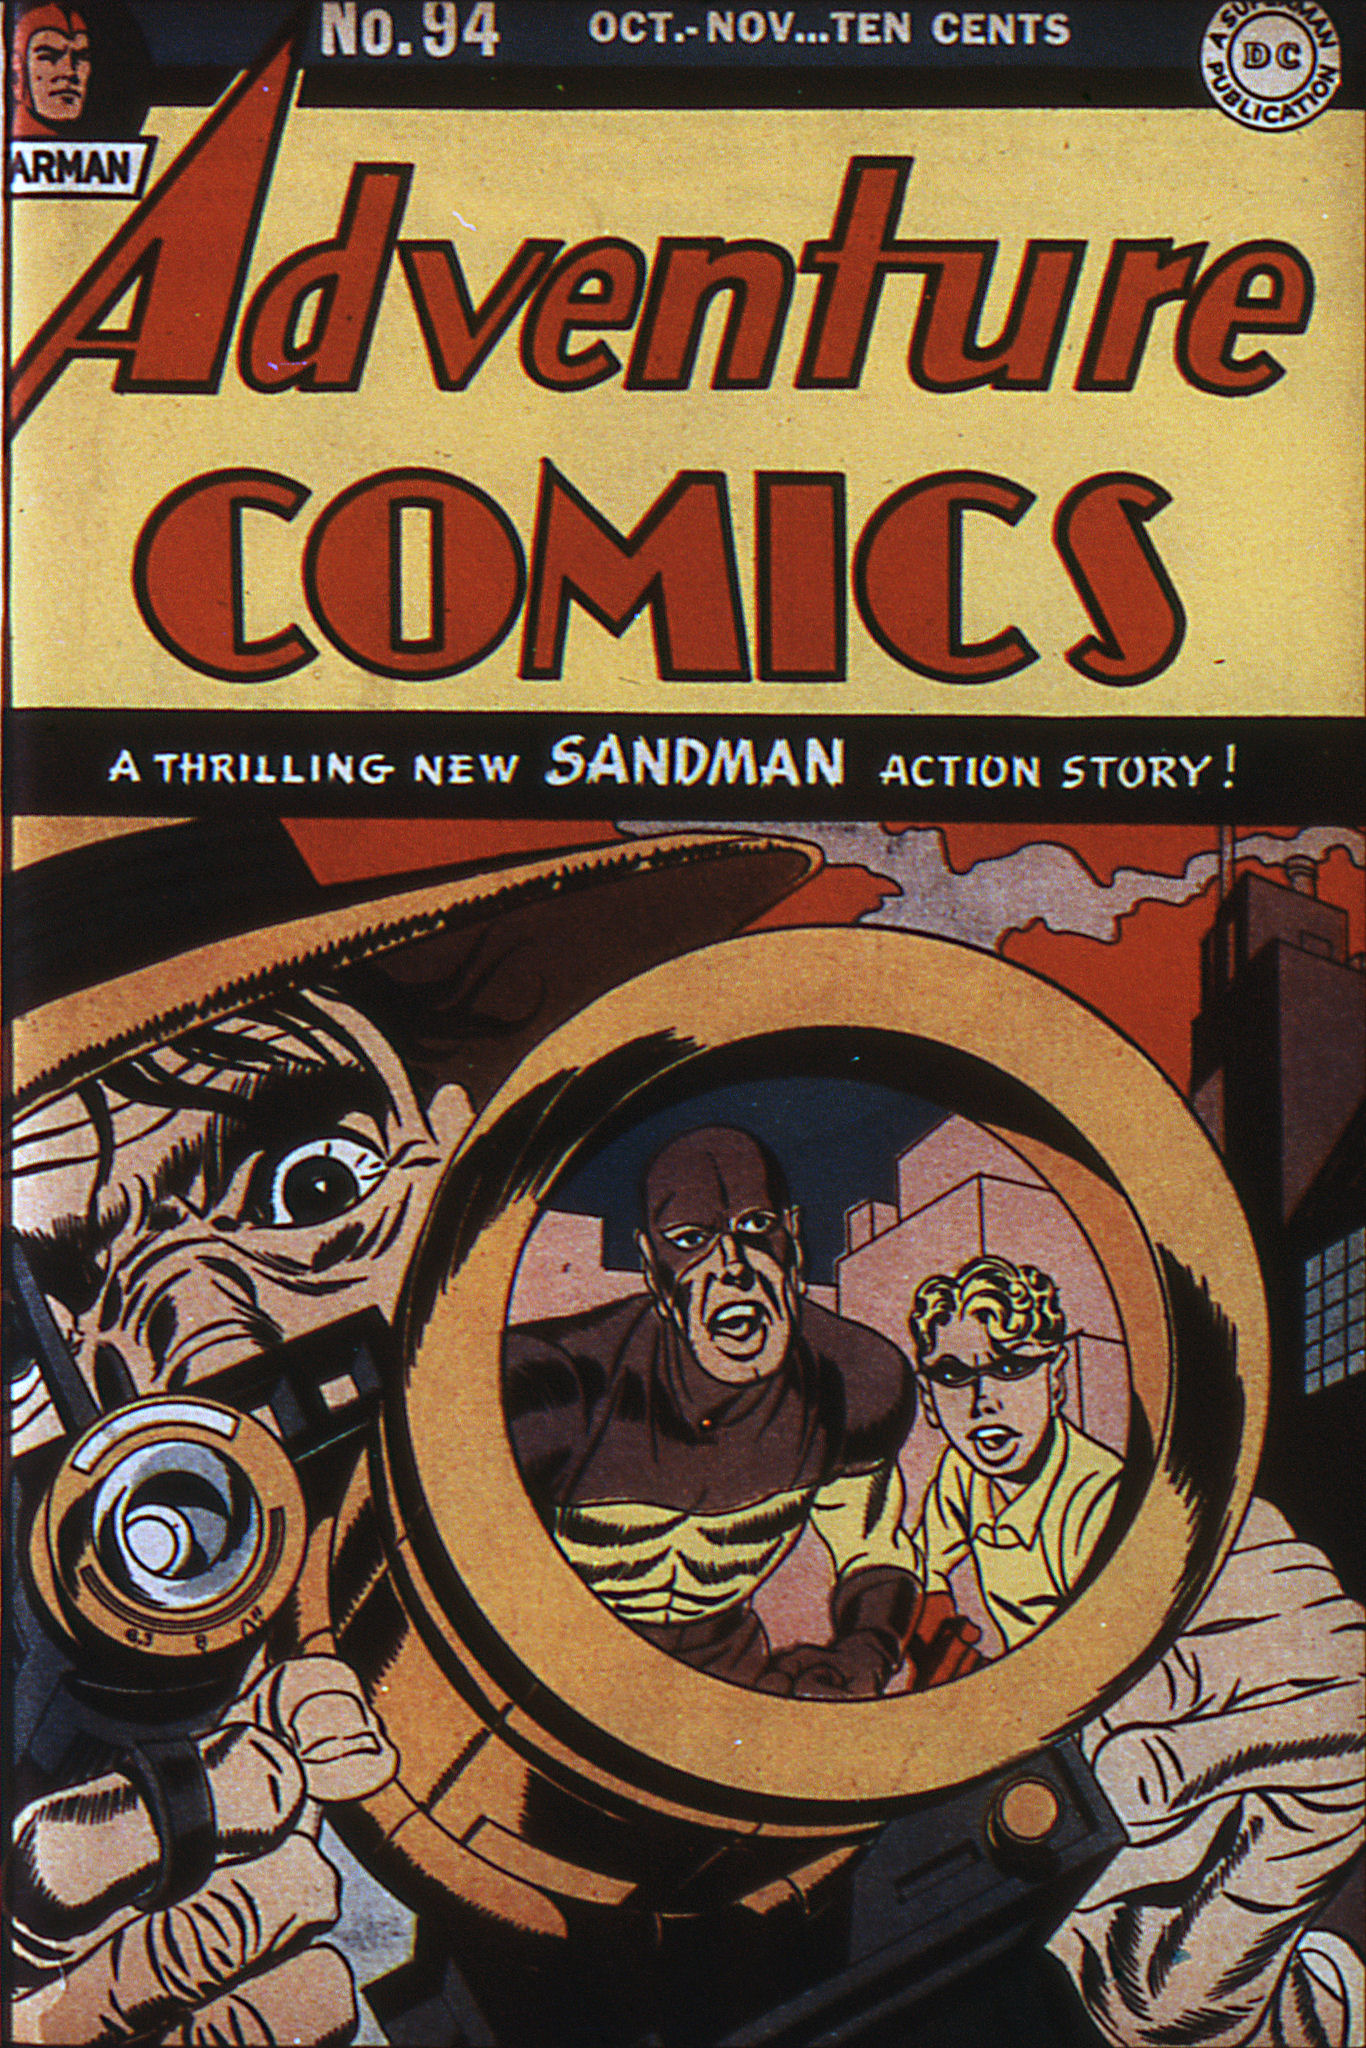 Read online Adventure Comics (1938) comic -  Issue #94 - 1